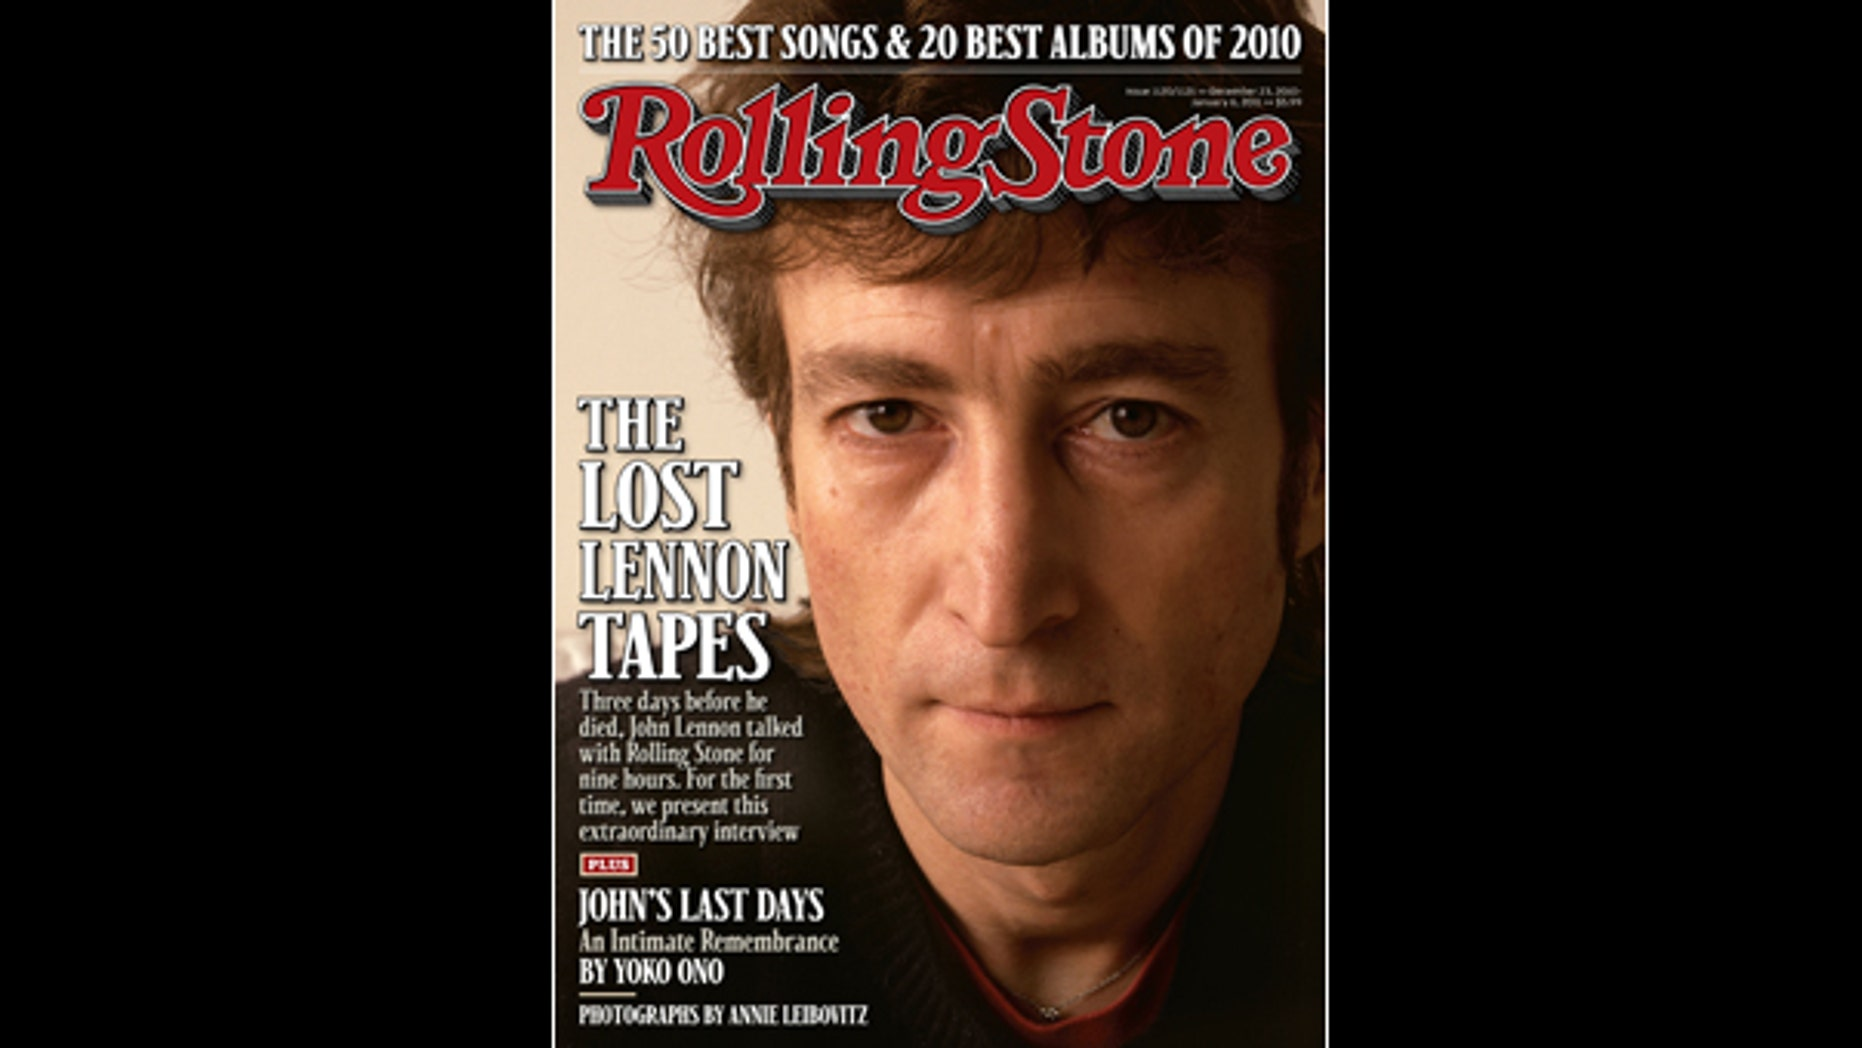 Former Beatle John Lennon is shown on the cover of the Dec. 23, 2010 issue of 'Rolling Stone.'